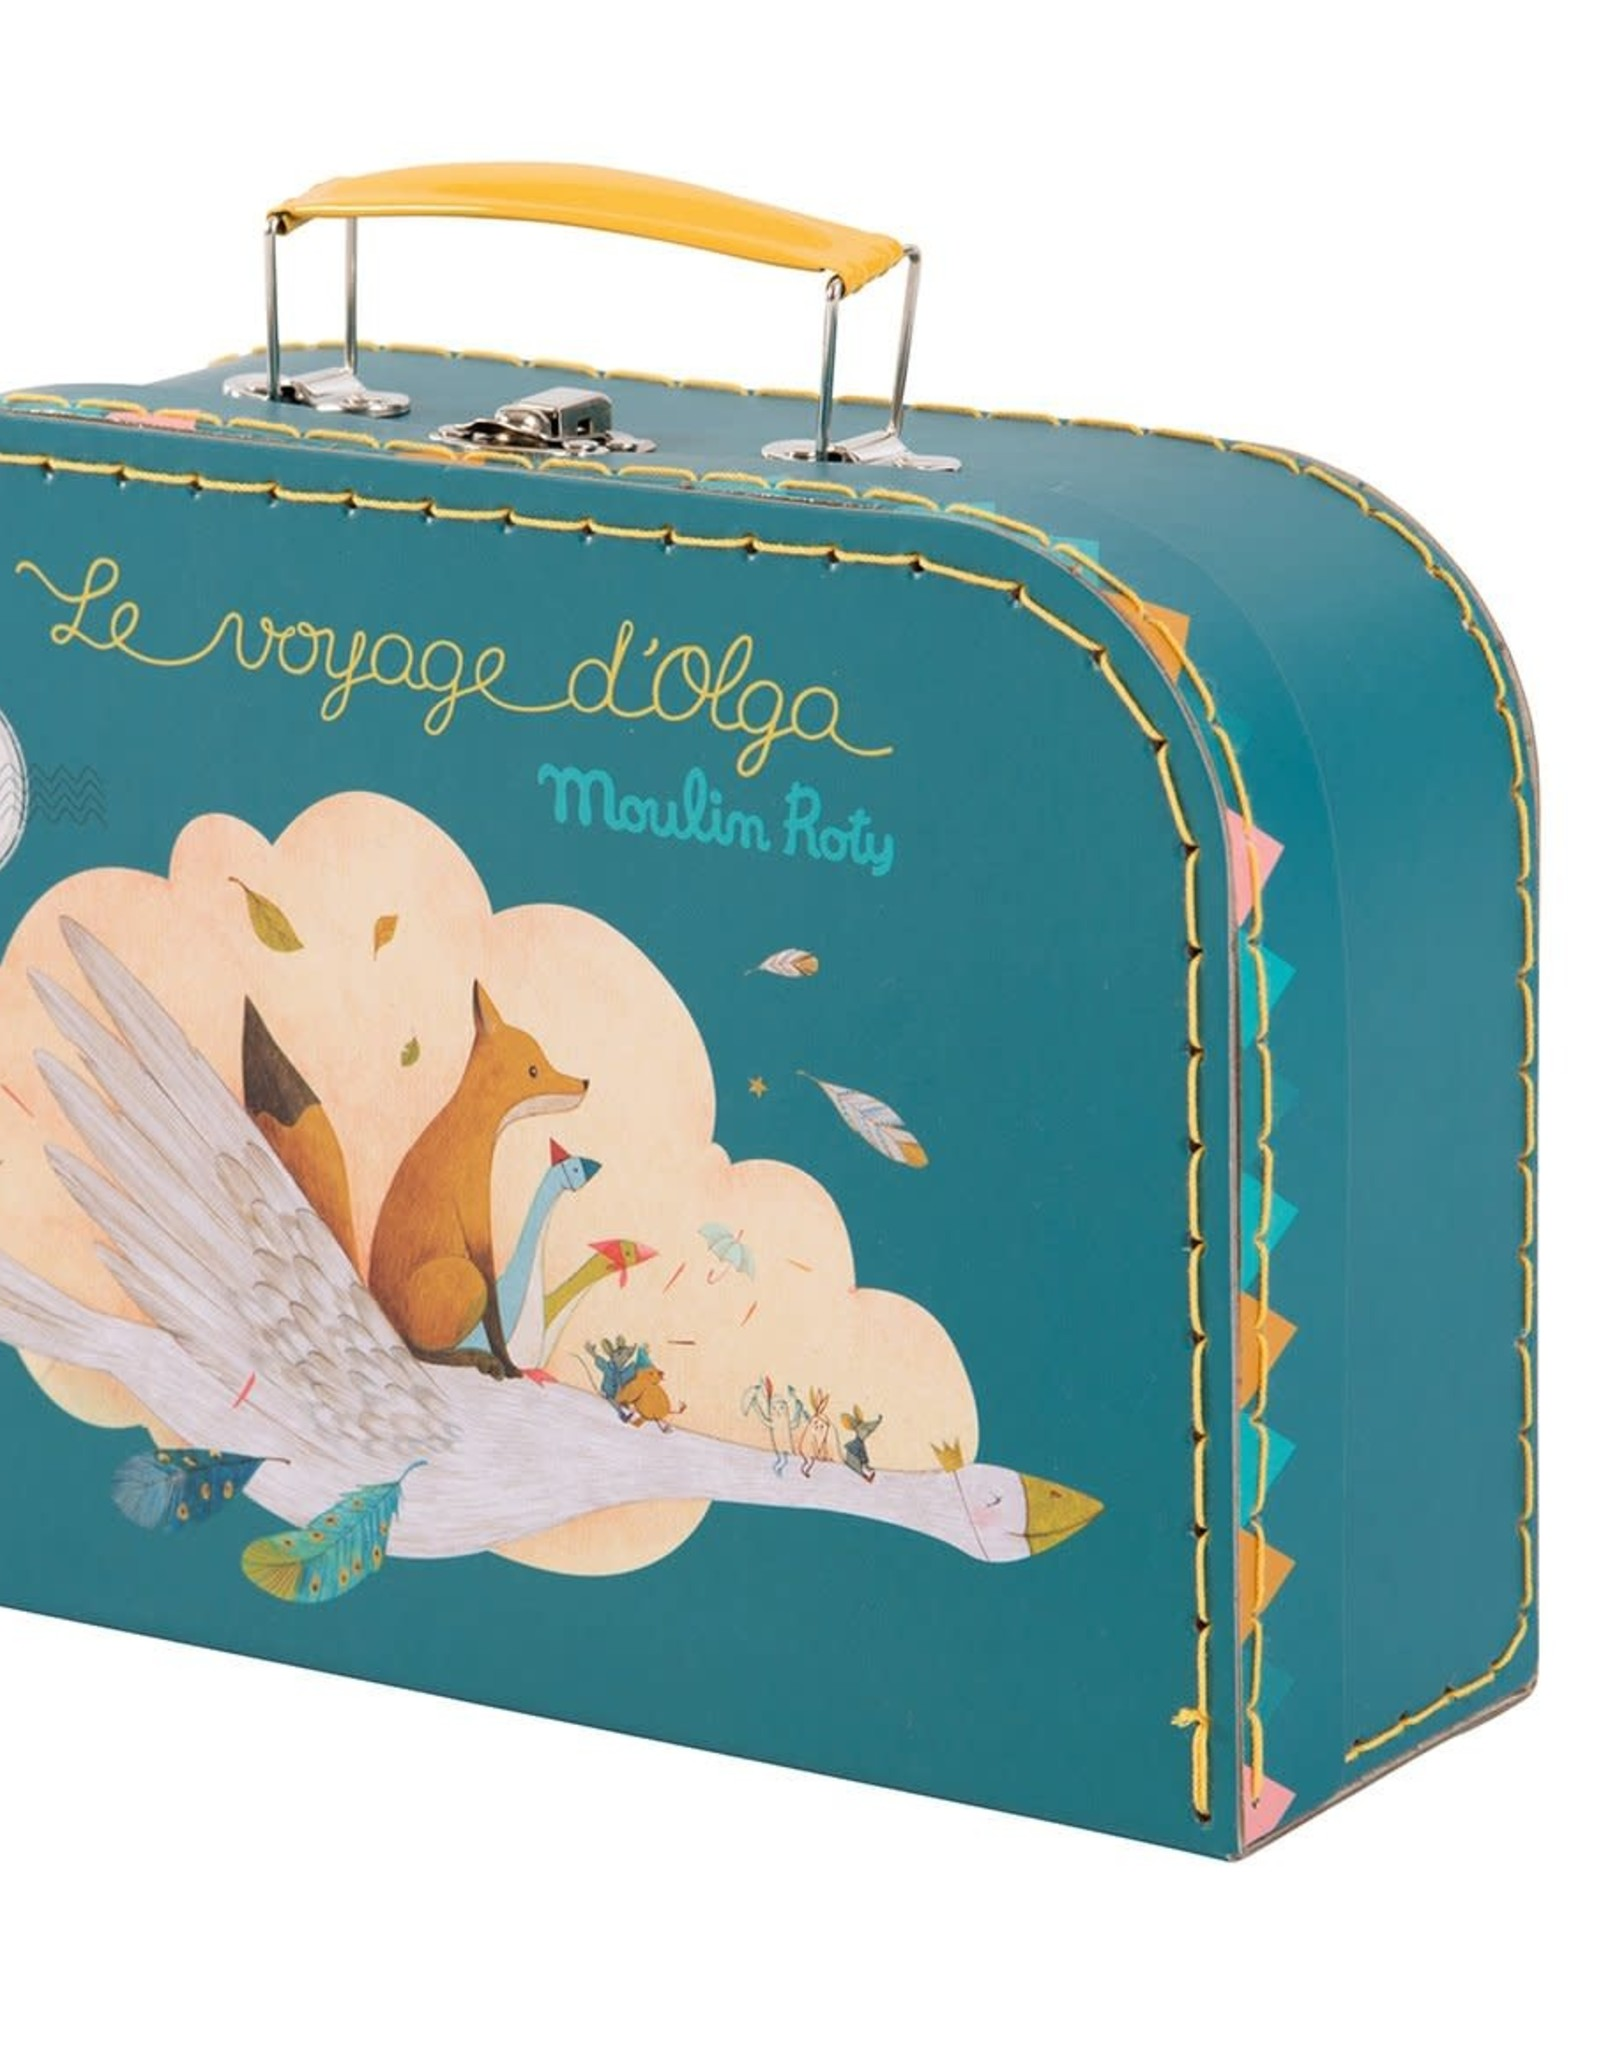 Voyage Olga Puzzle in Stitched Teal Lunchbox